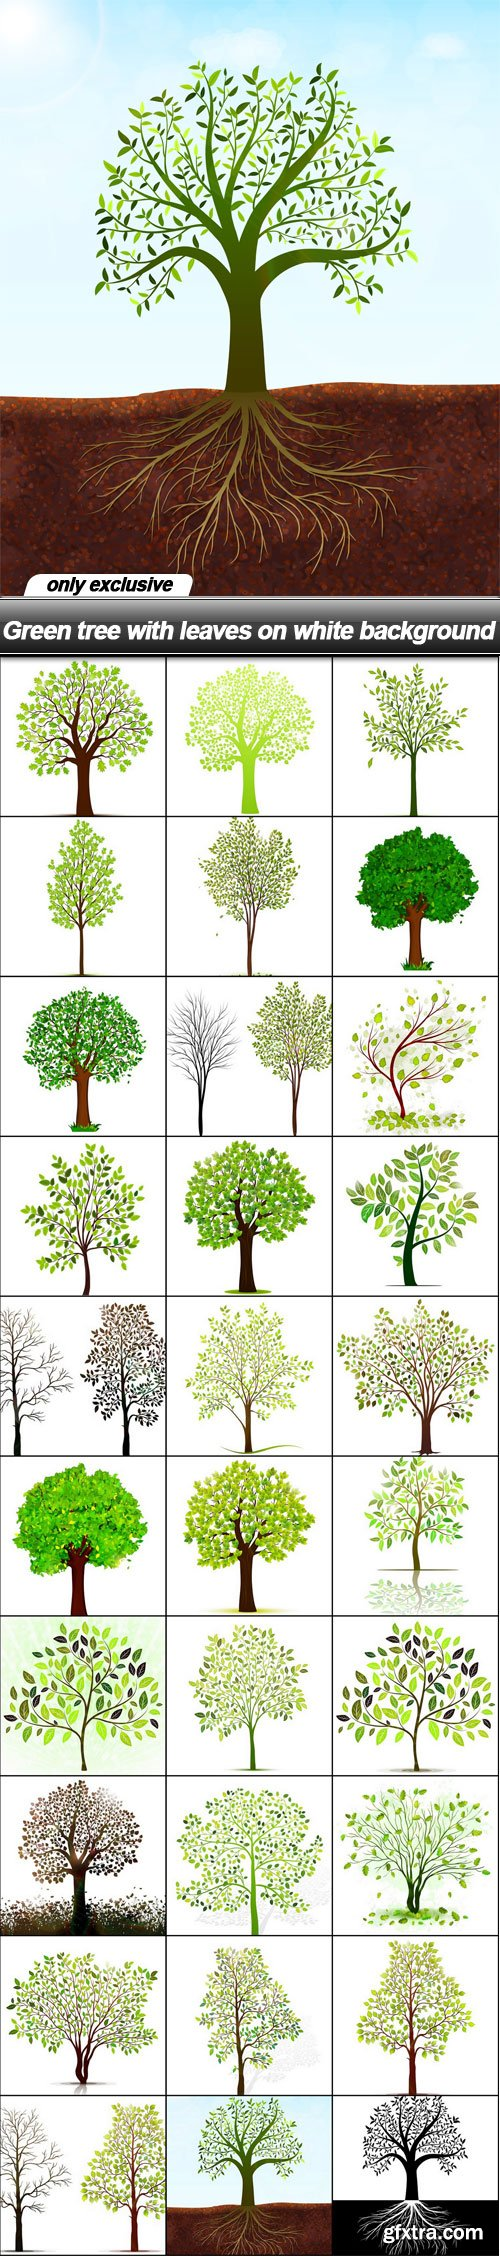 Green tree with leaves on white background - 30 EPS